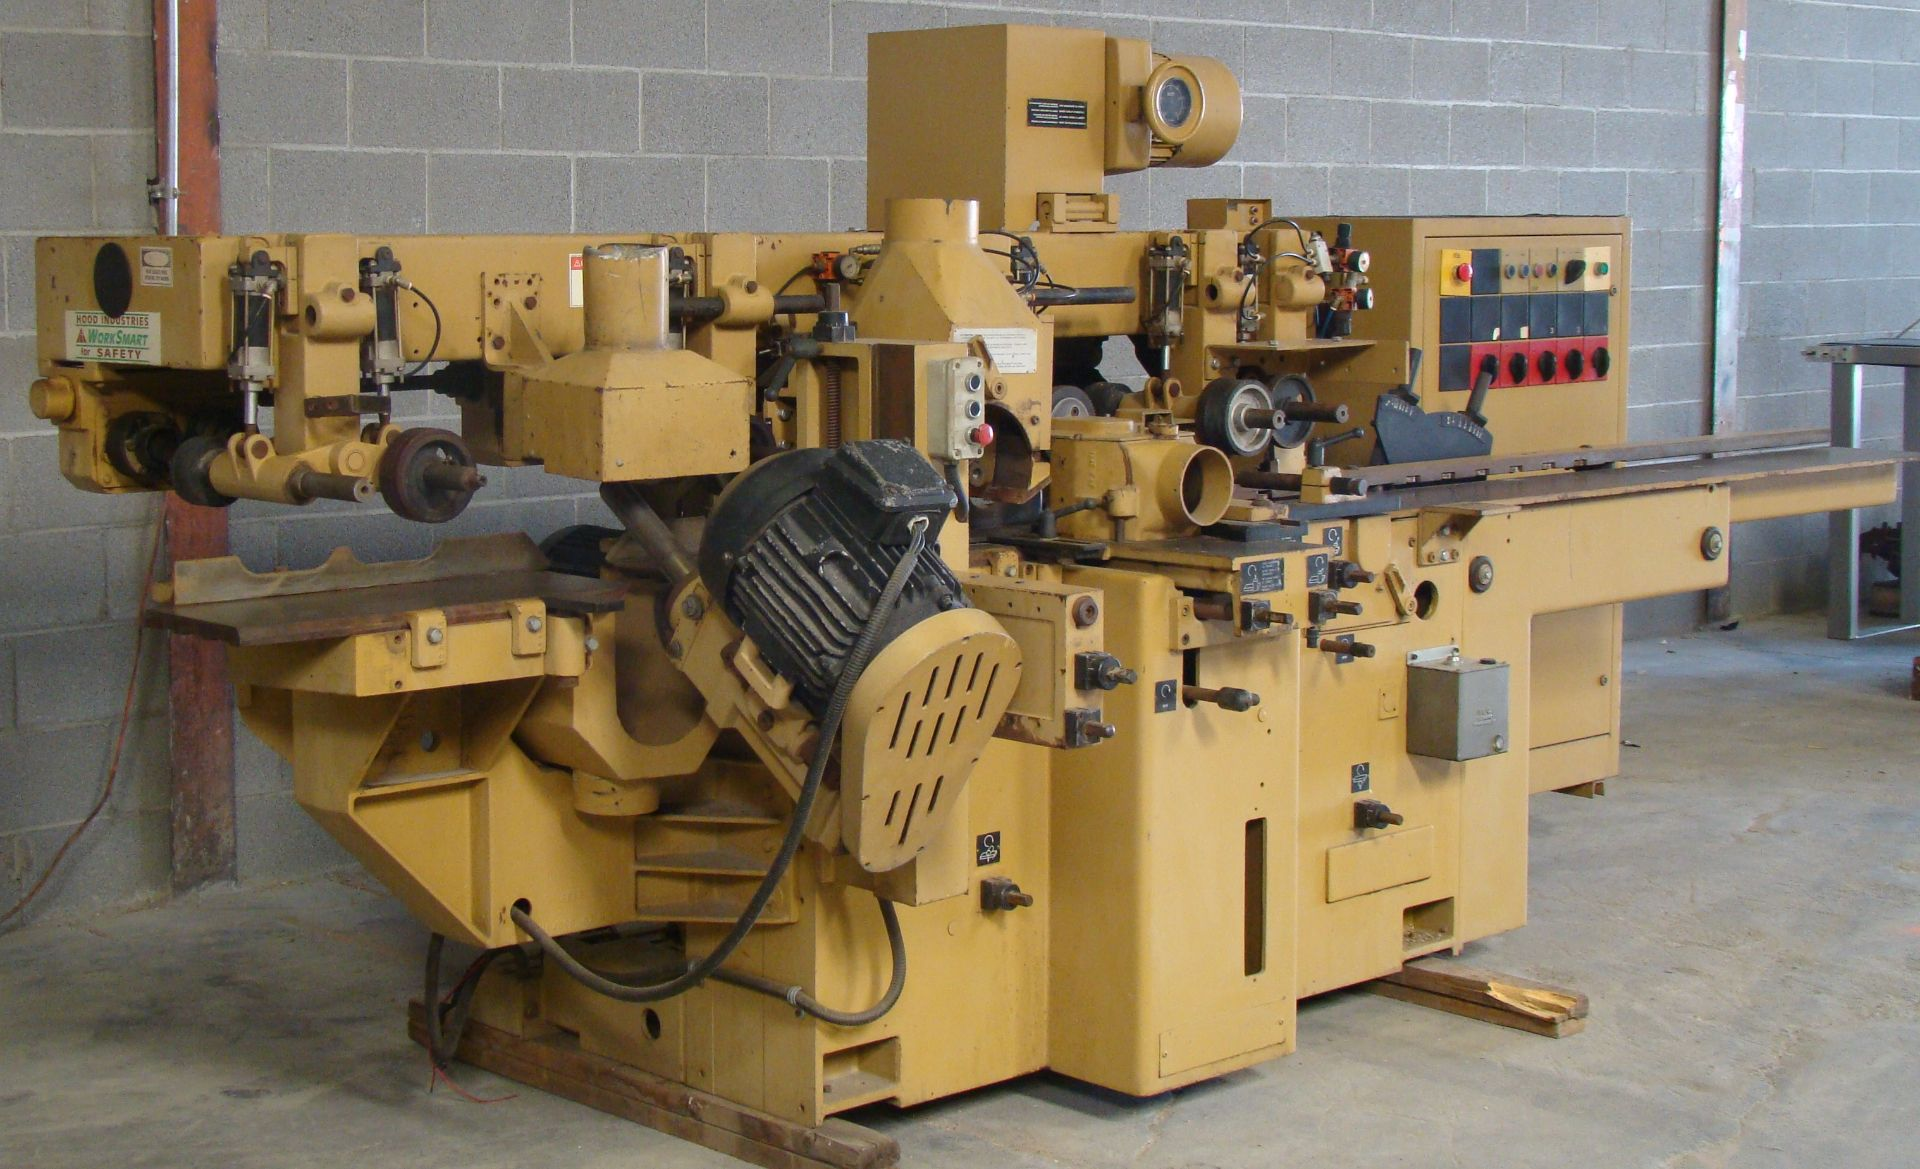 "SCMi 9"" Wood Moulder, Model: P230 5 Head 6.6HP 220/440 Volts 3Phase - Image 13 of 14"